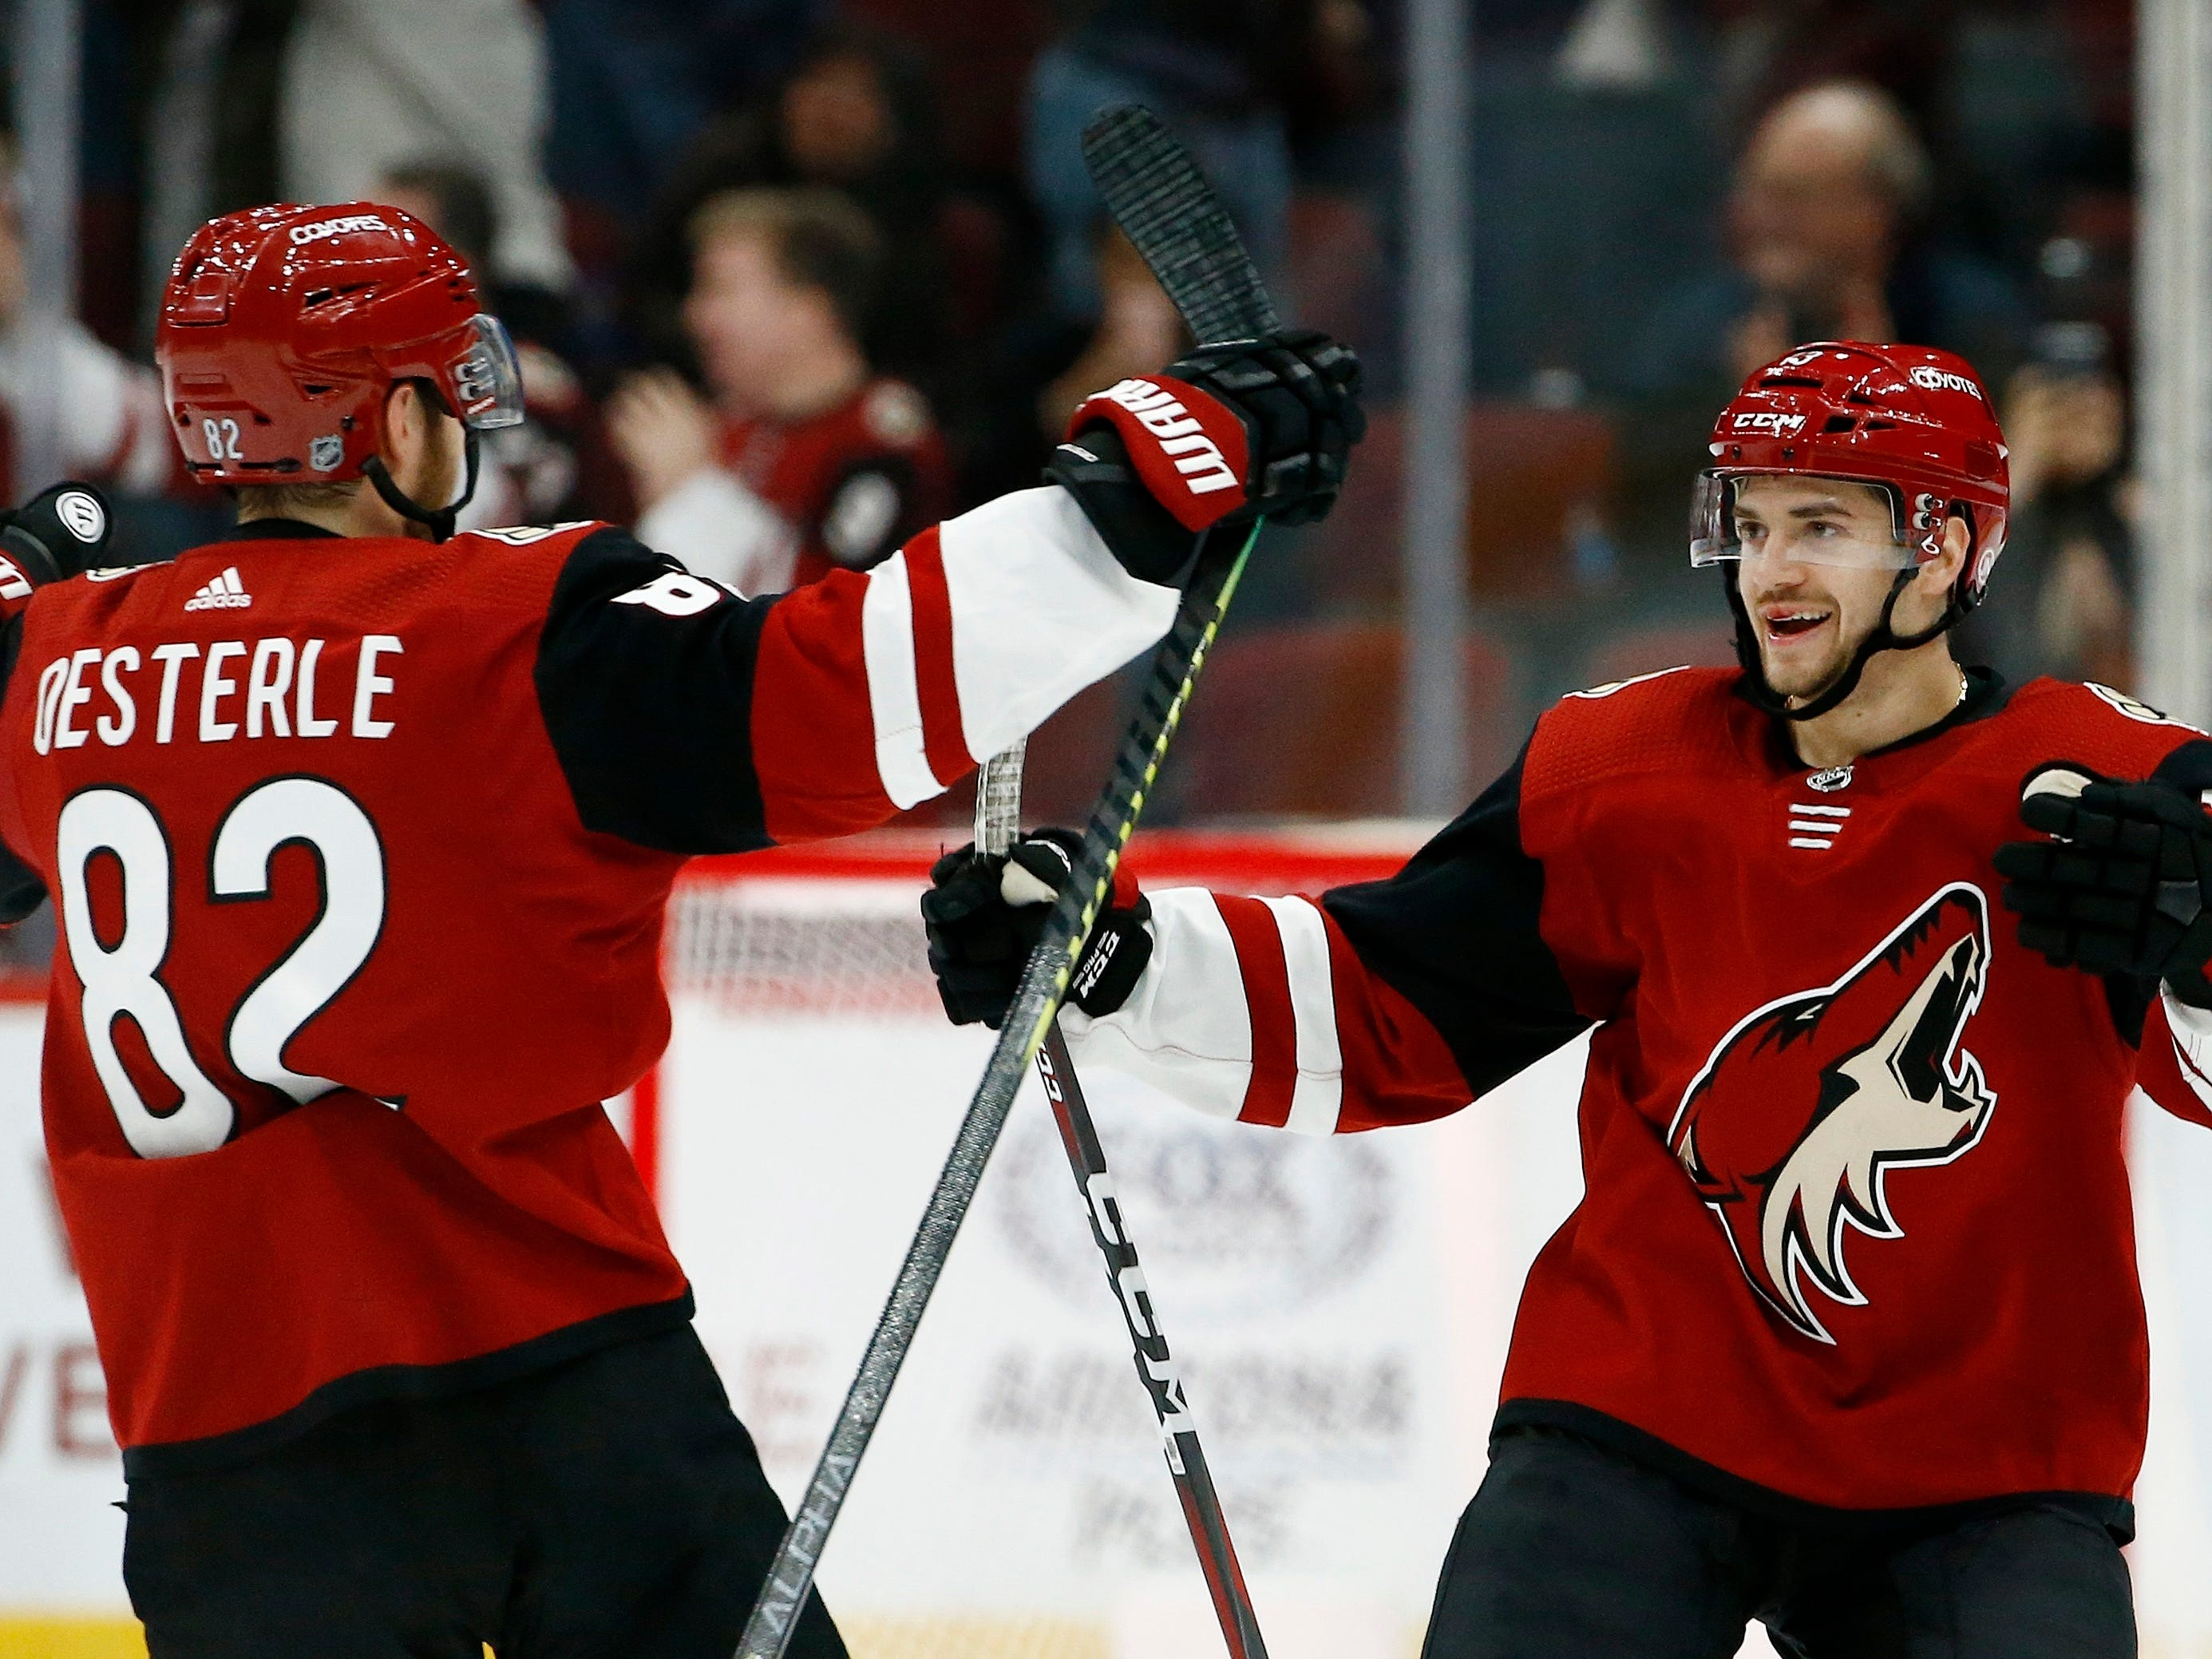 Arizona Coyotes center Vinnie Hinostroza, right, celebrates his goal against the Florida Panthers with Coyotes defenseman Jordan Oesterle (82) during the shootout in an NHL hockey game Tuesday, Feb. 26, 2019, in Glendale, Ariz. The Coyotes won 4-3.